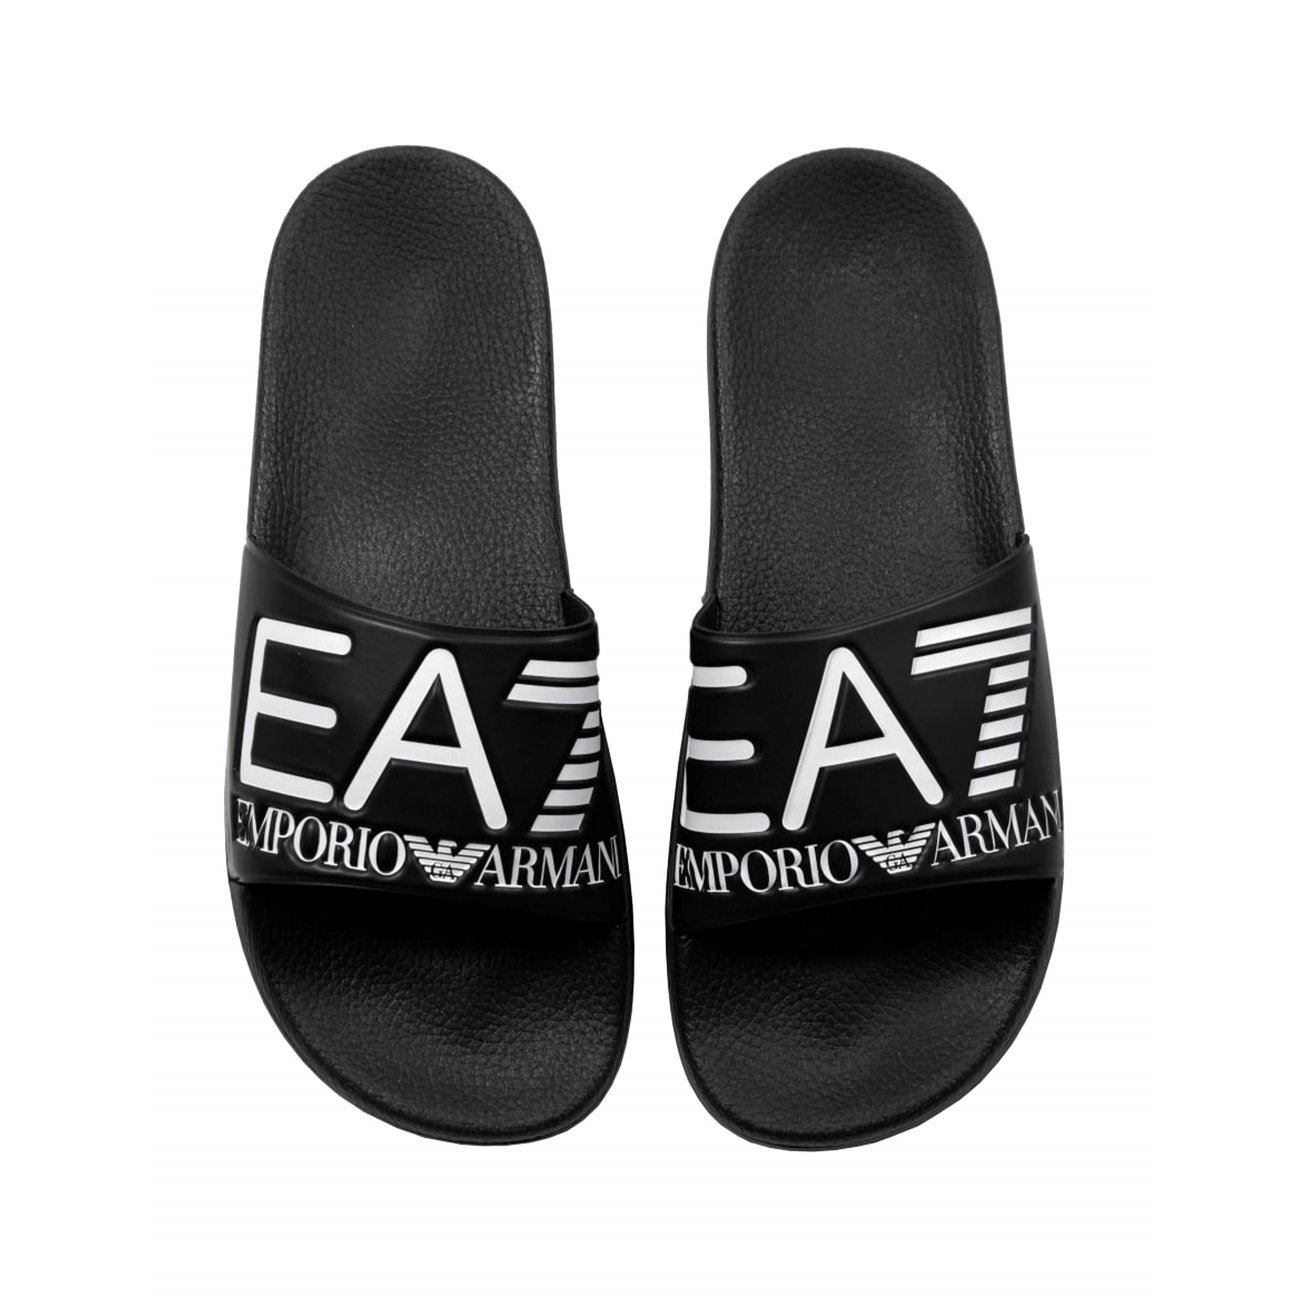 1fc3be1bc Details about EA7 EMPORIO ARMANI MEN S SEA WORLD SLIDERS SANDALS BLACK FLIP  FLOPS BEACH POOL